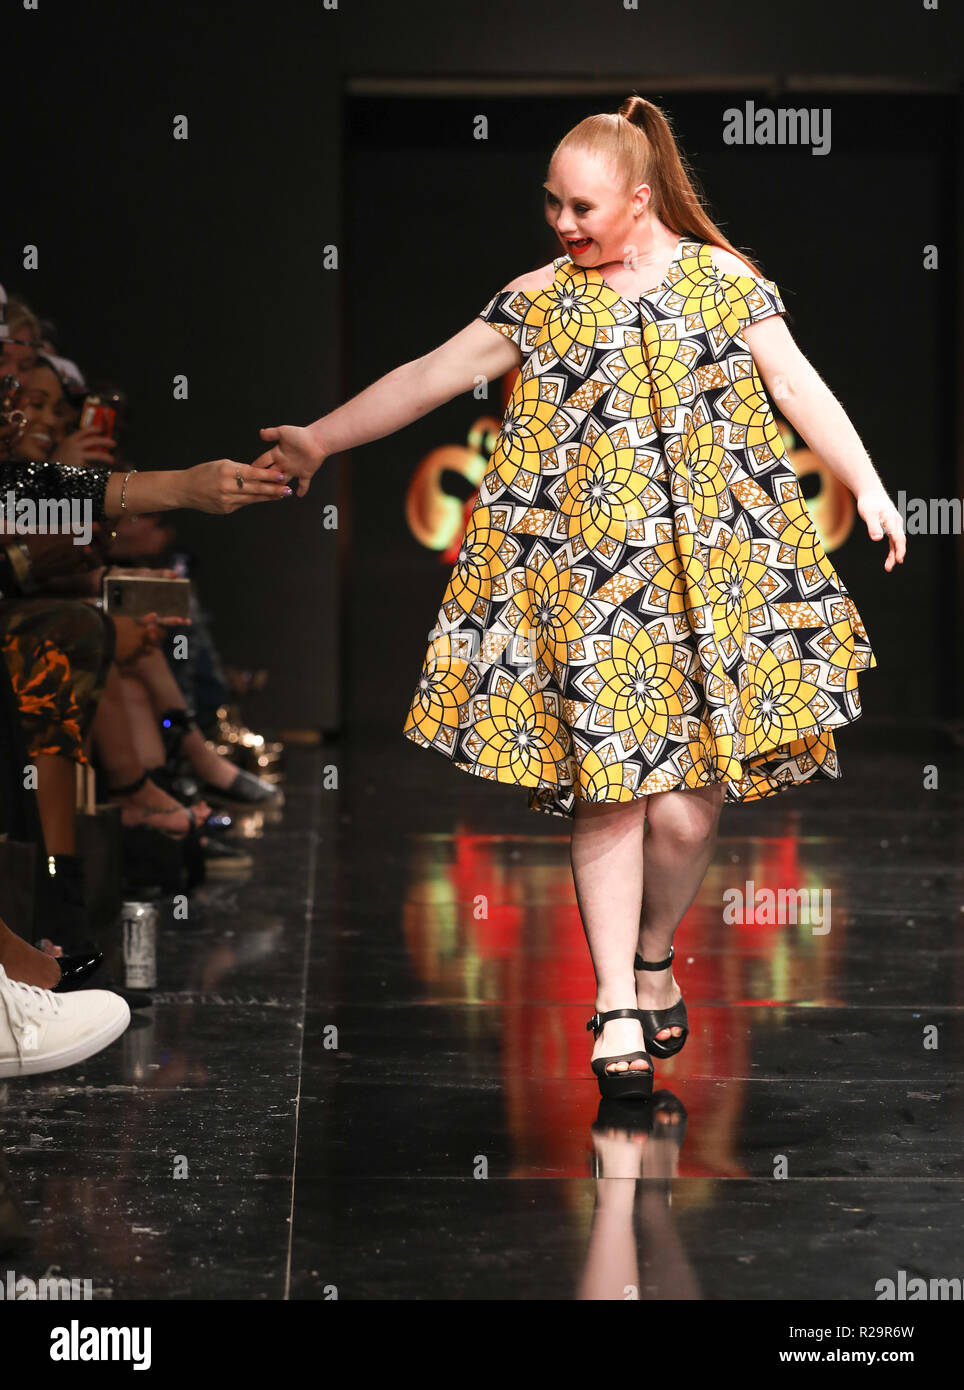 Los Angeles Fashion Week - Art Hearts Fashion - Dahil Republic of Couture -  Catwalk Featuring  Madeline Stuart Where  Los Angeles 5466849c3bba